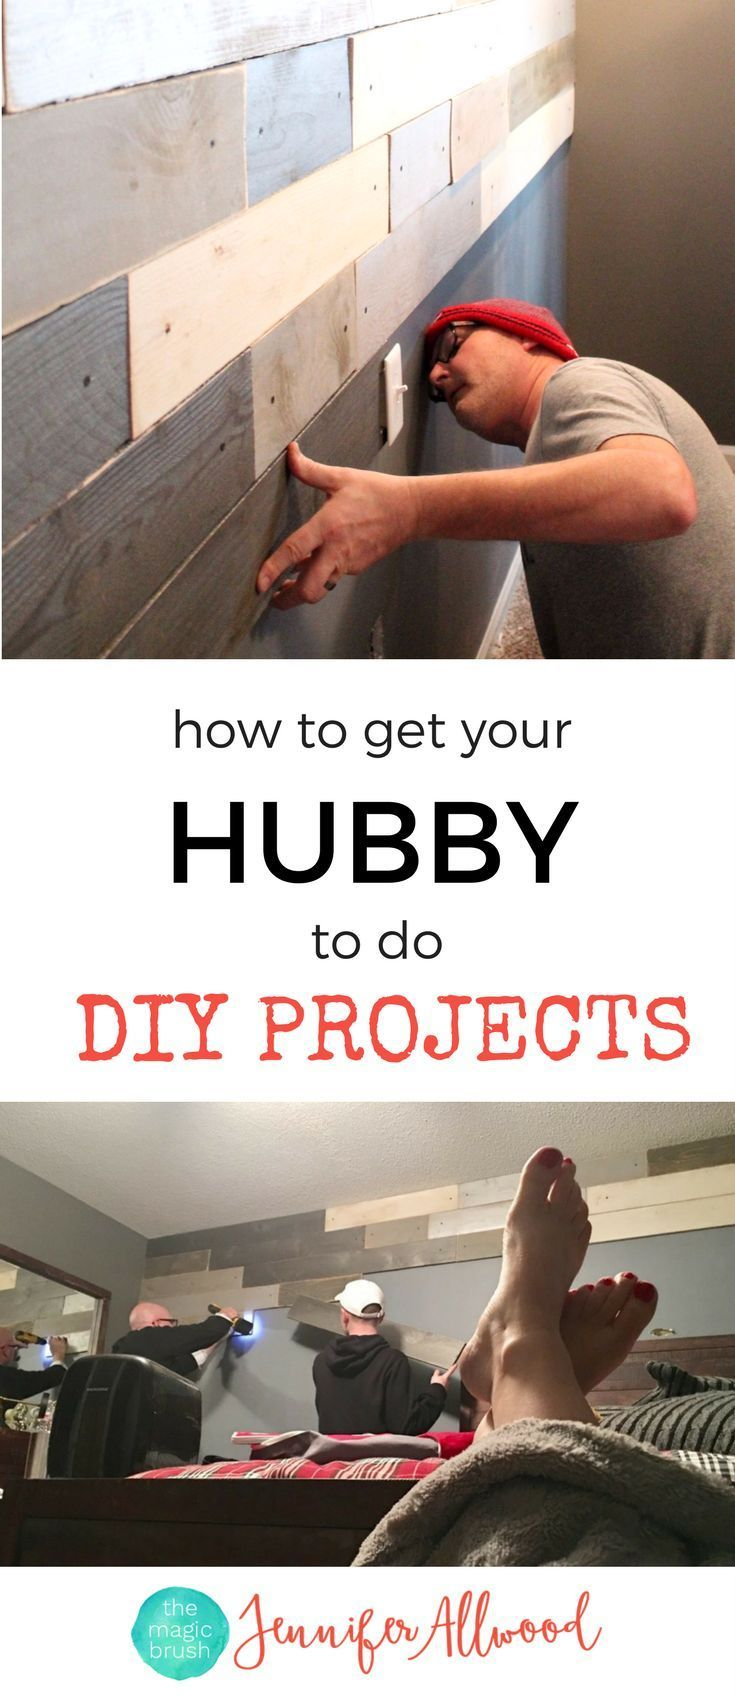 How to get your hubby to do   your DIY projects around the house. Get that honey-do list tackled without nagging -  Marriage & Home Renovation Tips by designer Jennifer Allwood. Get those home improvement projects finished!